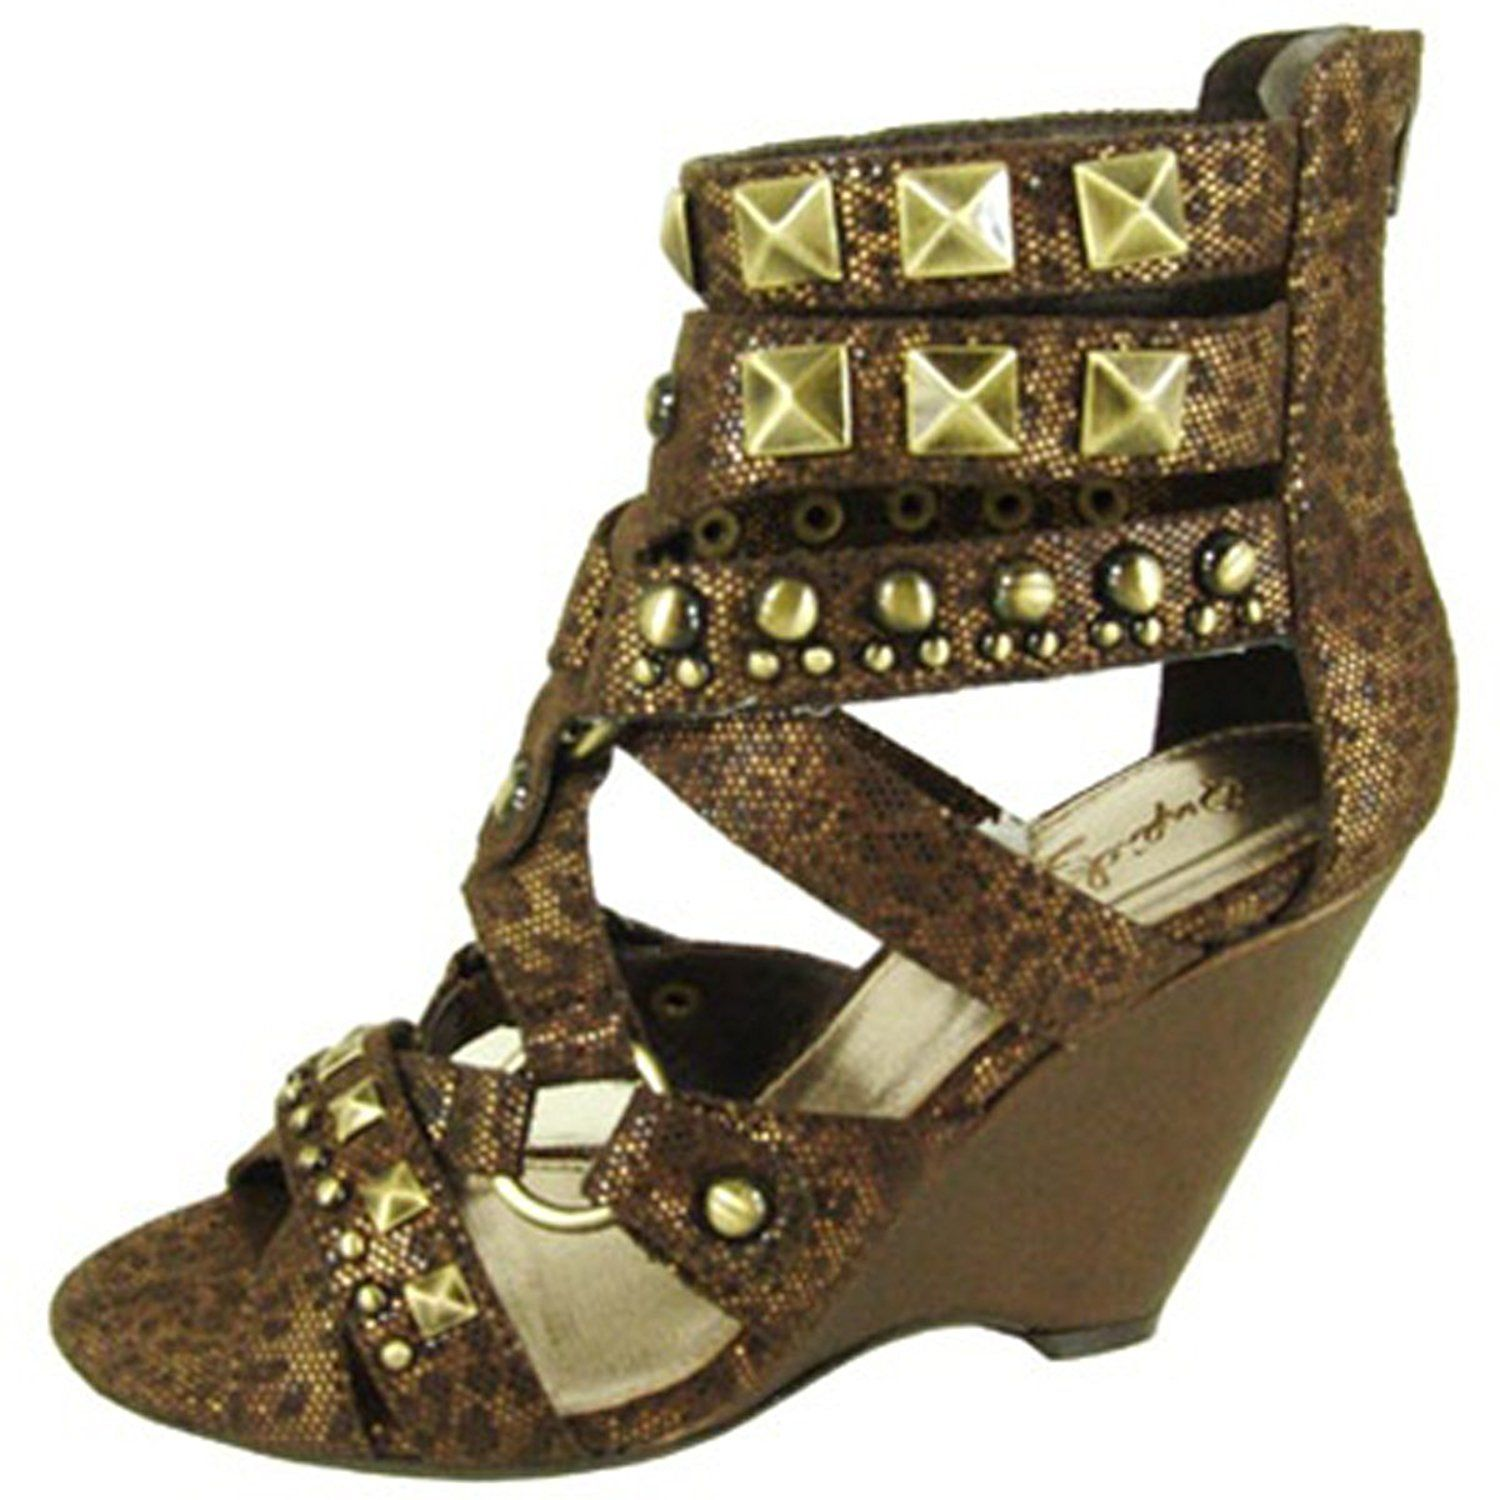 443e2d08902 Qupid Luxe Strappy High Heel Studded Gladiator Strappy Wedge Sandals  Quinvolve Brown Lizard -- Want